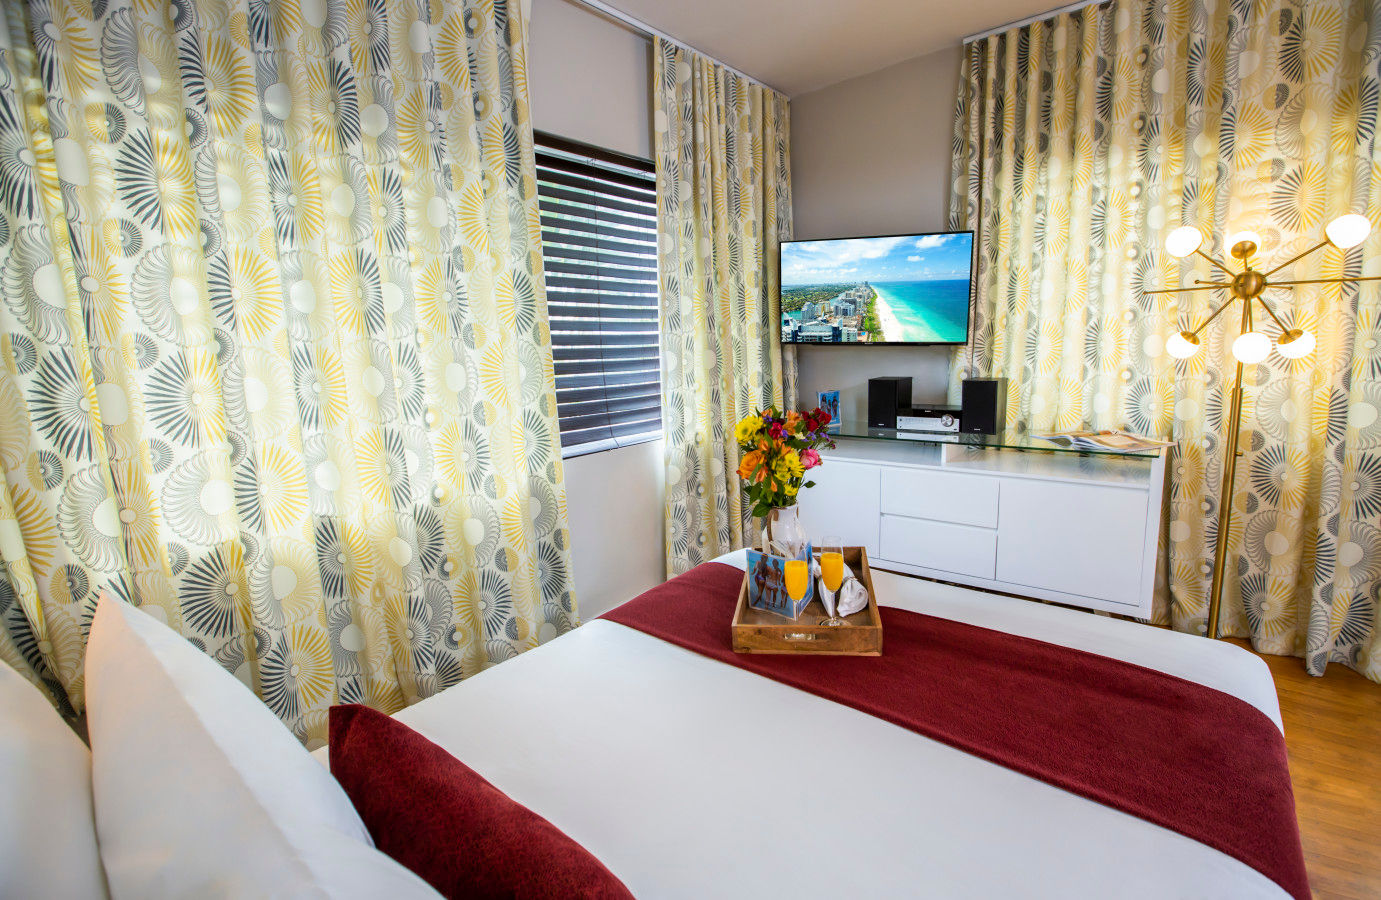 Beachside All Suites Hotel - comfortable beds